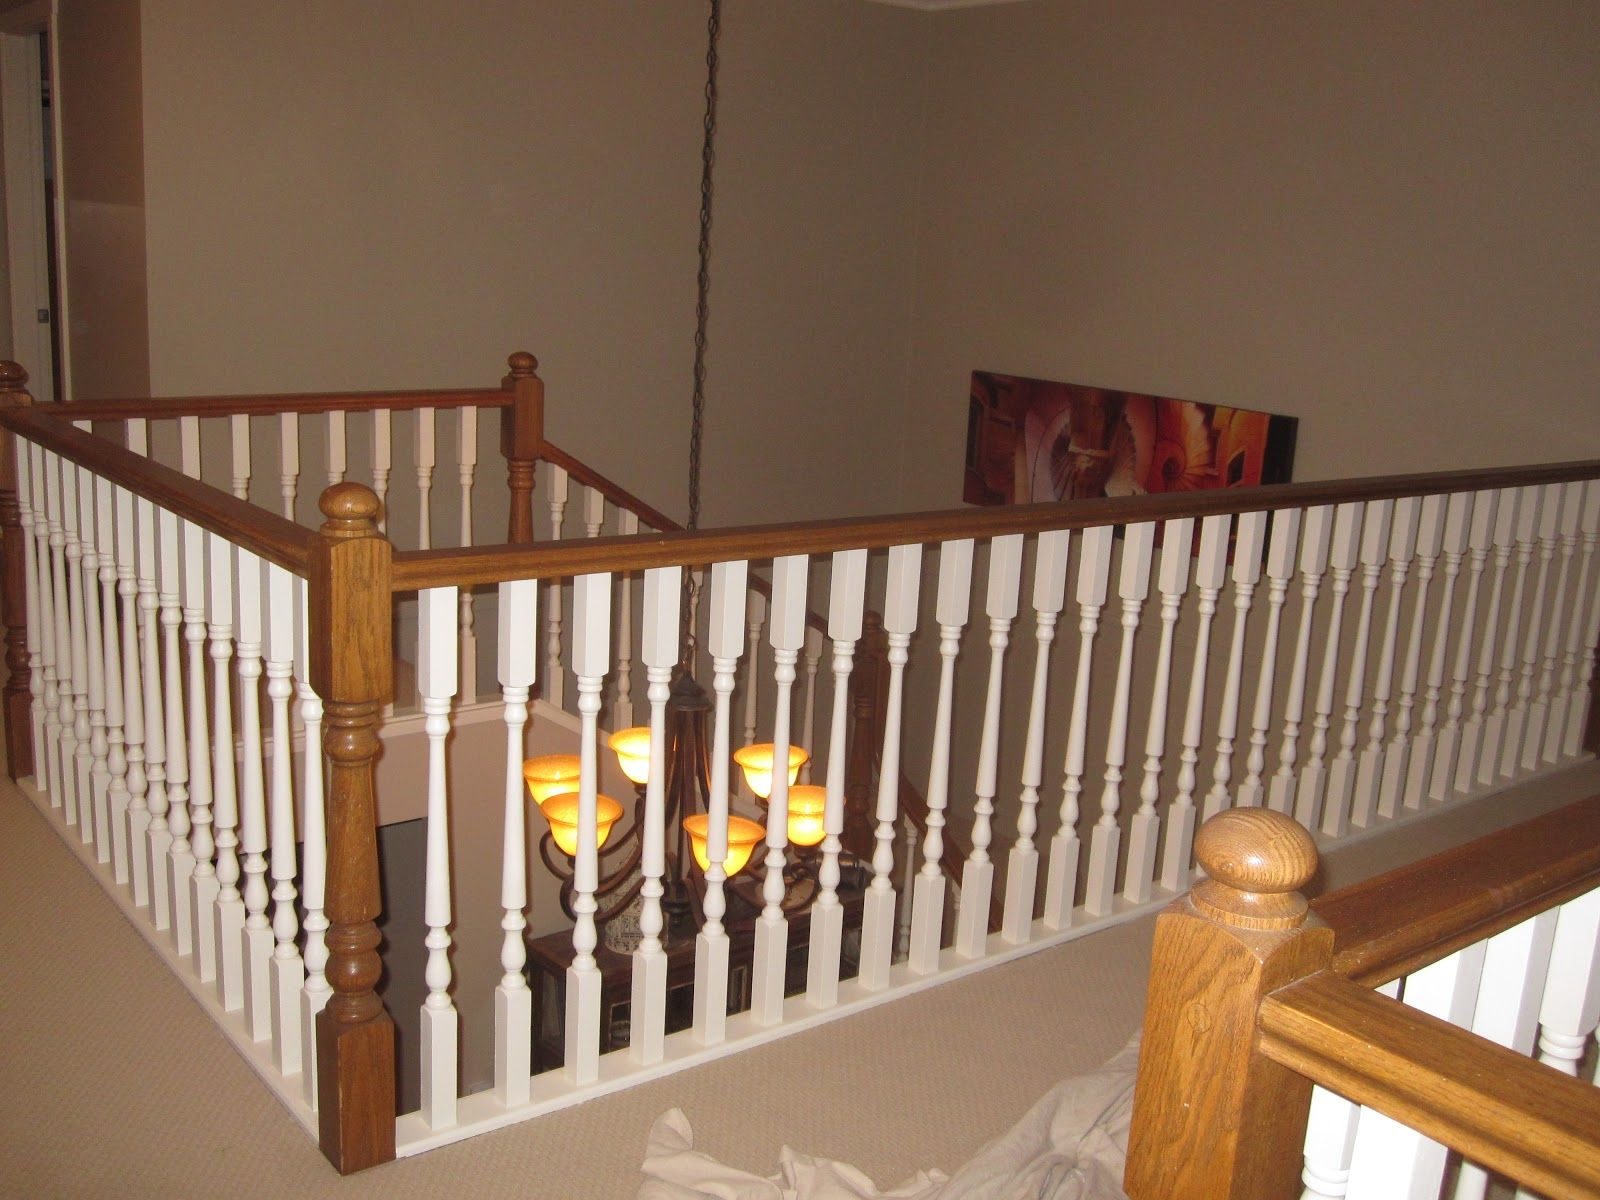 Best Painting A Stairway Railing Black Busy Painting Out Oak Stair Railing Lots Of Work But Great 400 x 300